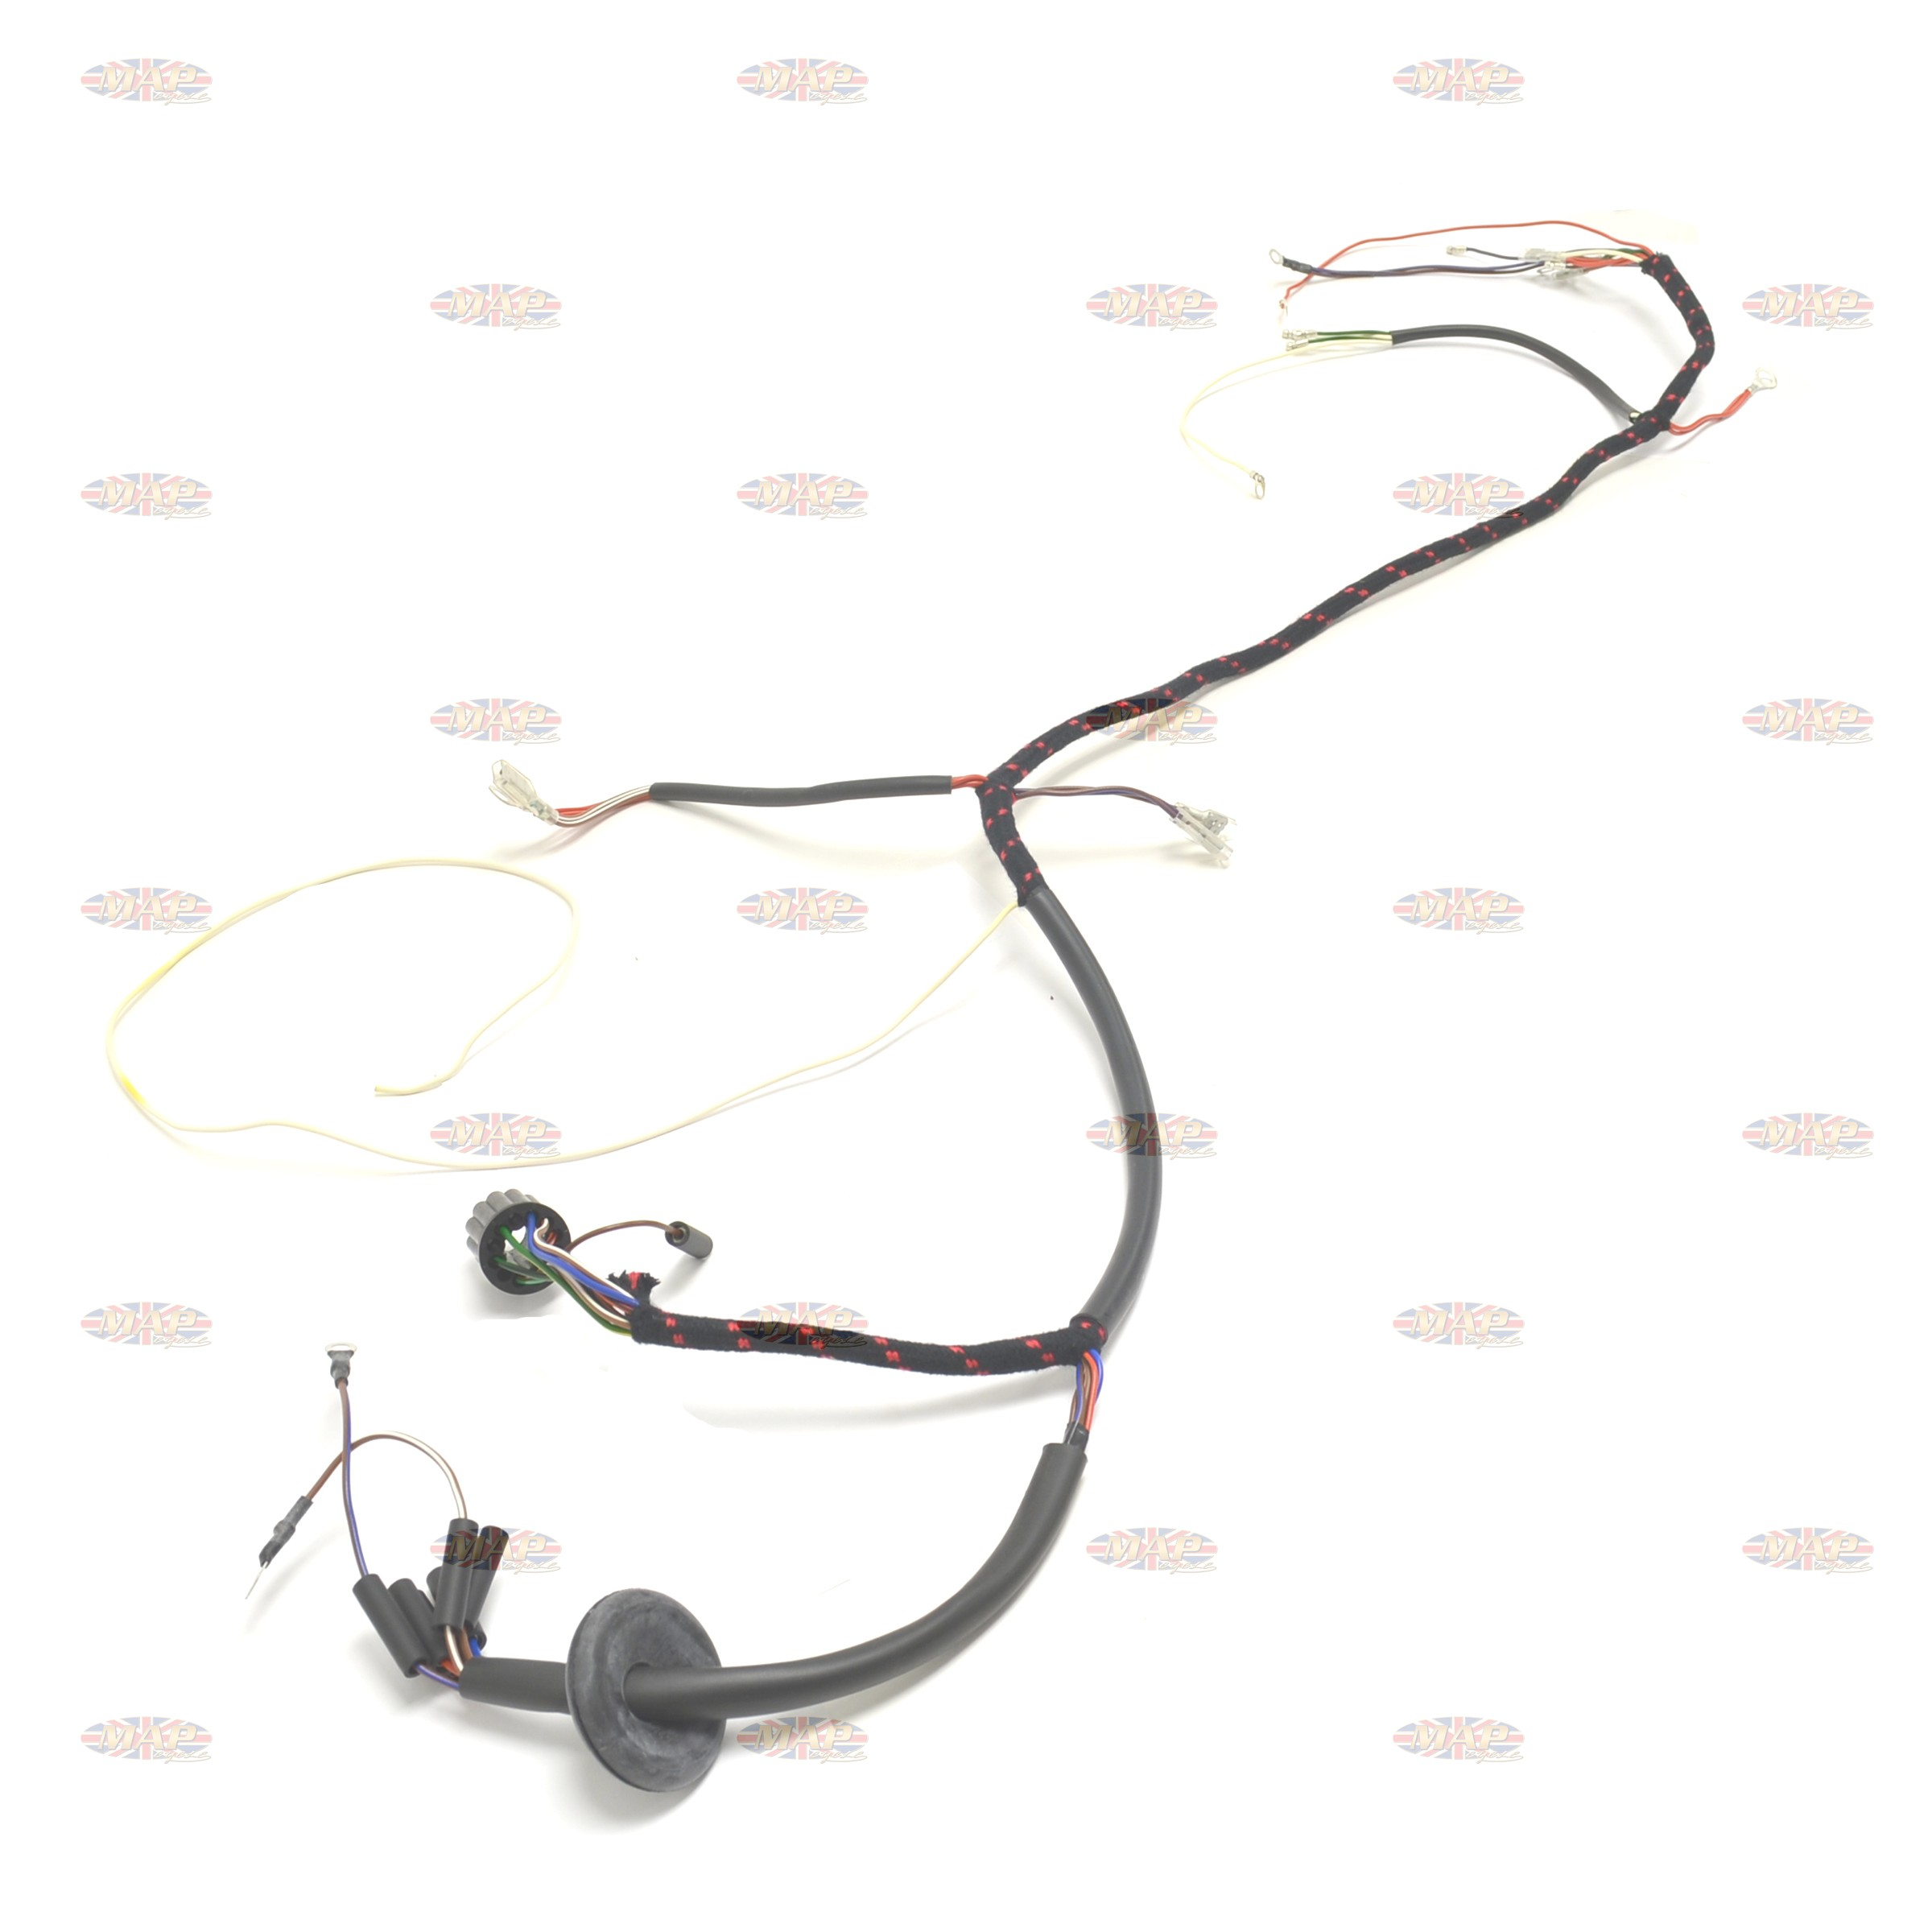 Norton 67 650ss 750 Atlas Uk Made 12 Volt Wiring Harness